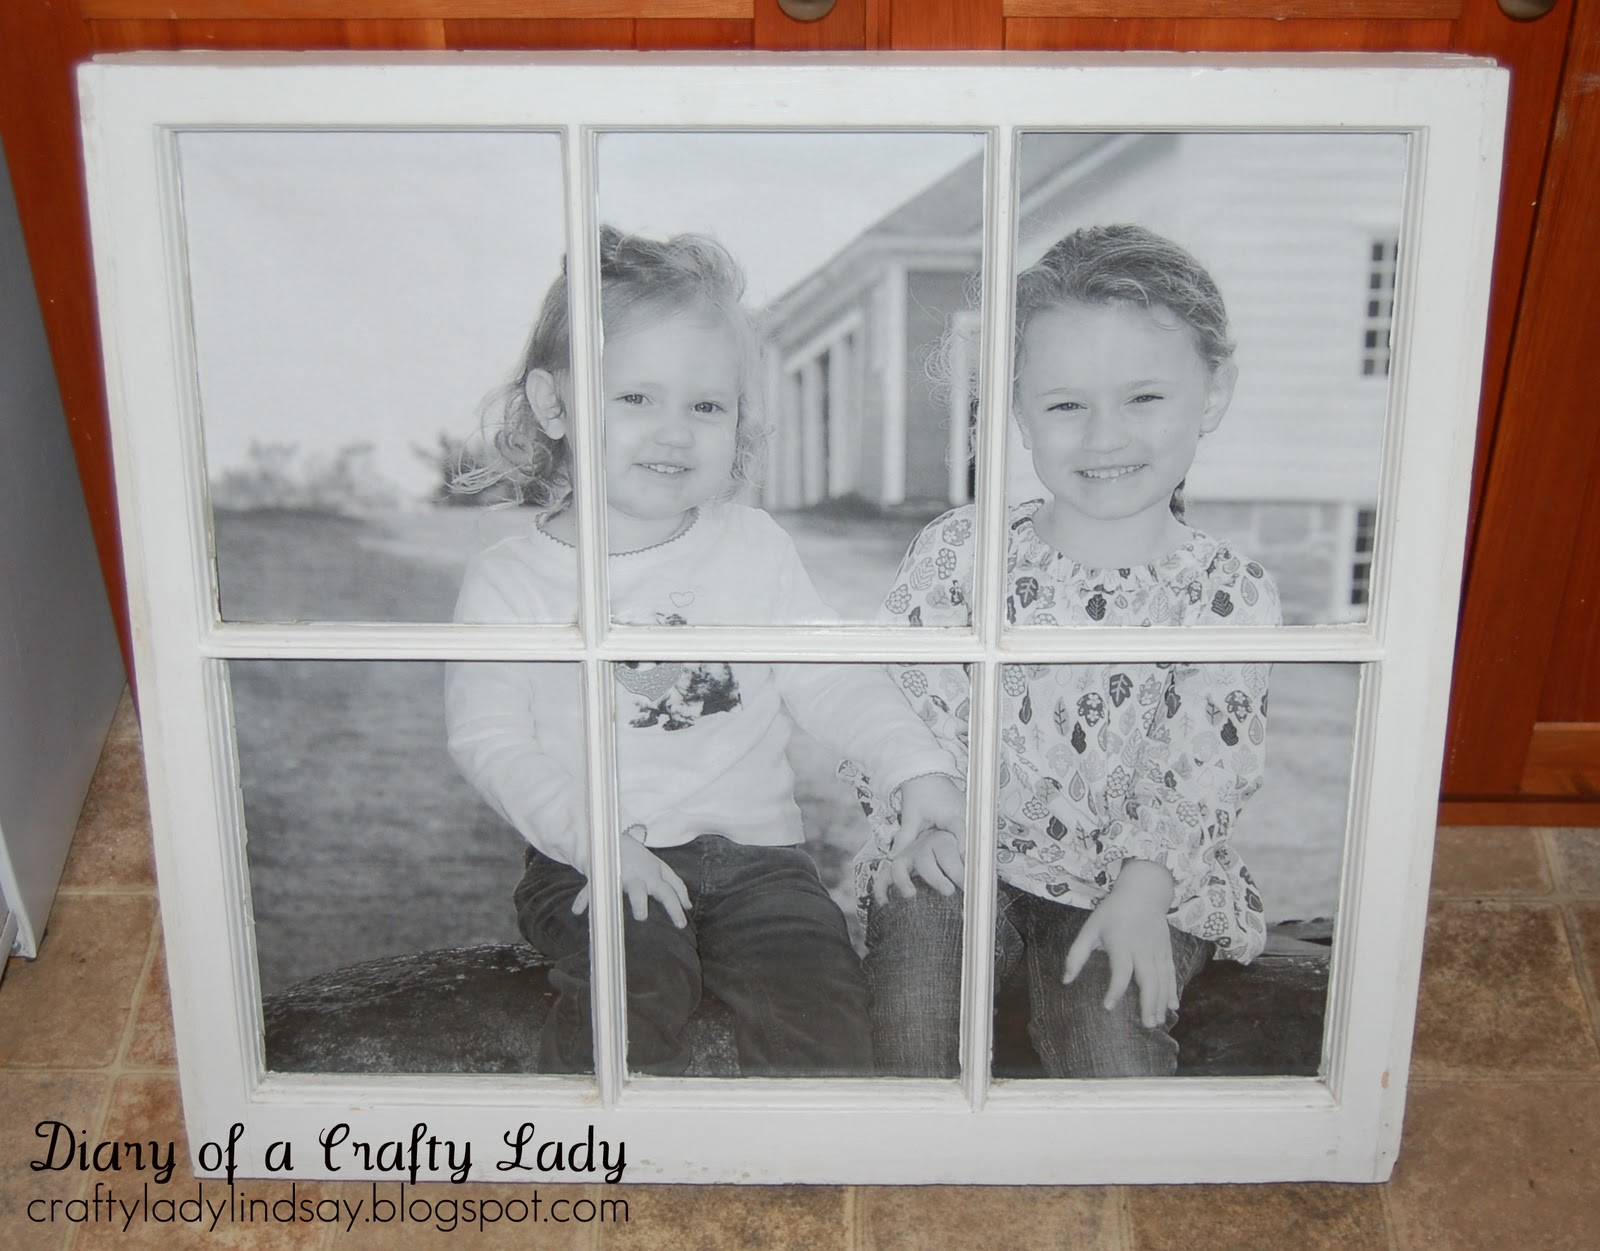 Diary of a Crafty Lady: Old Window, Big Picture